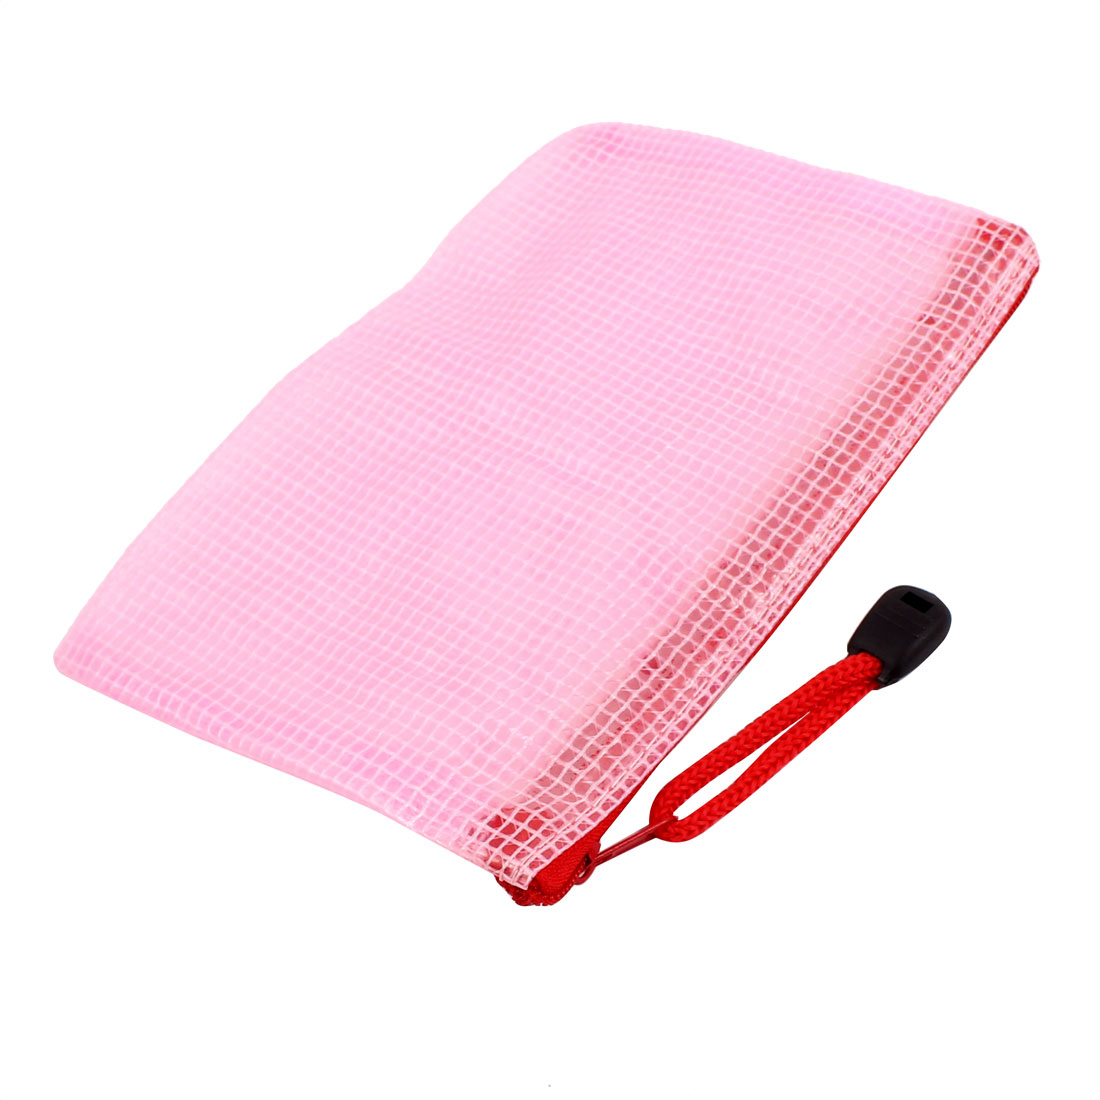 PVC Zippered Mesh A6 Paper Document File Storage Bag Holder Pouch Pink